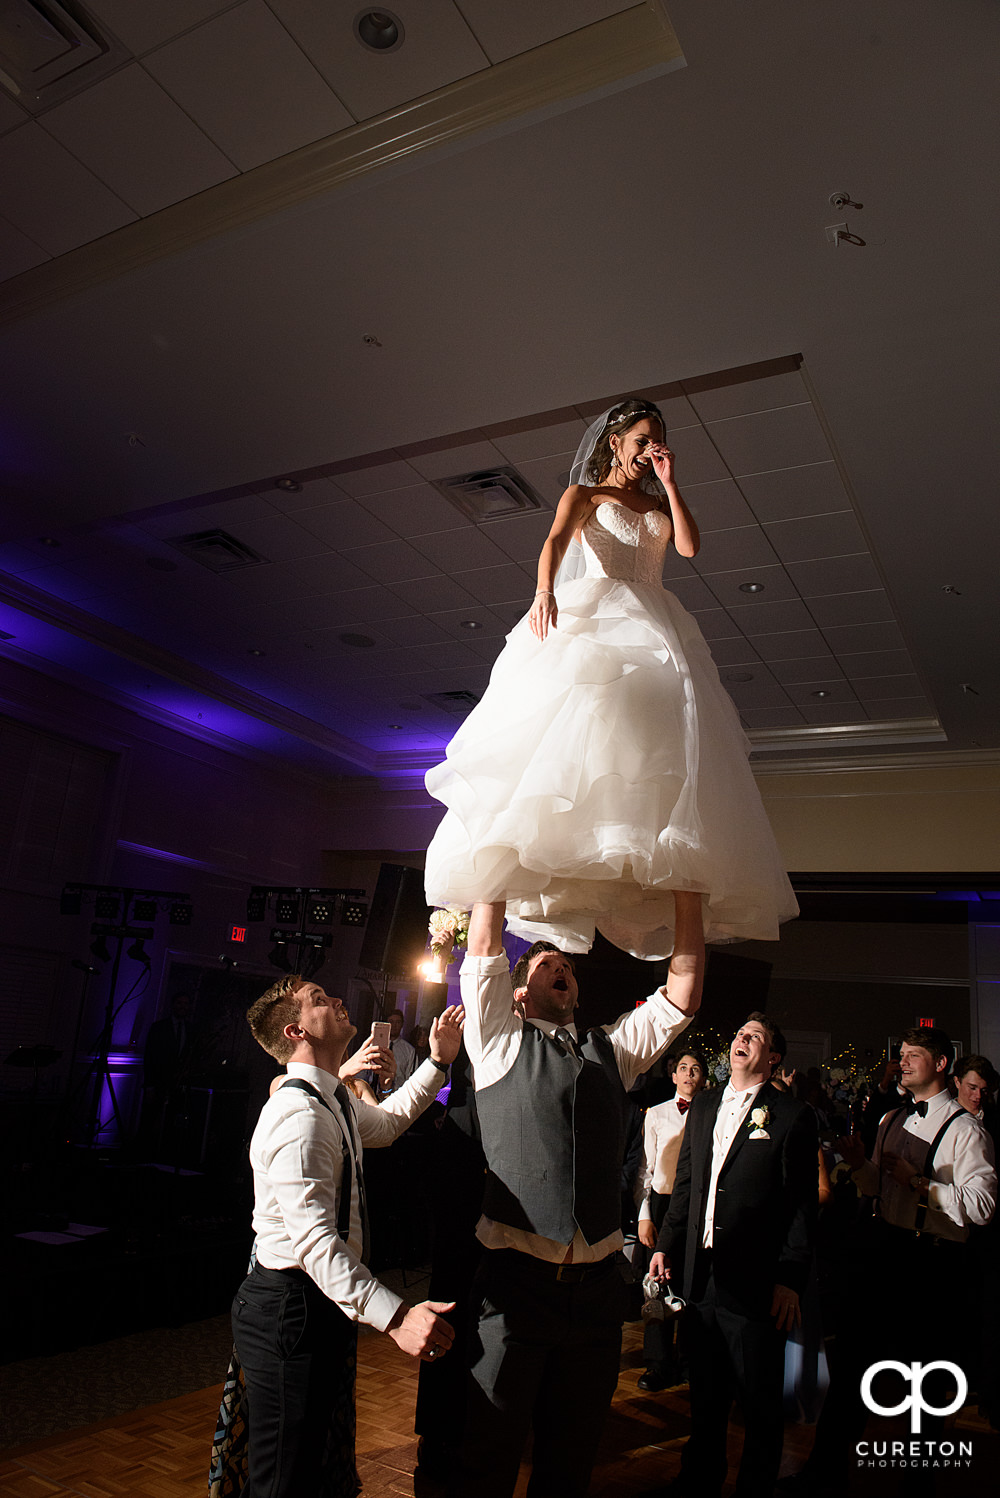 Bride performing a cheer stunt at her wedding.